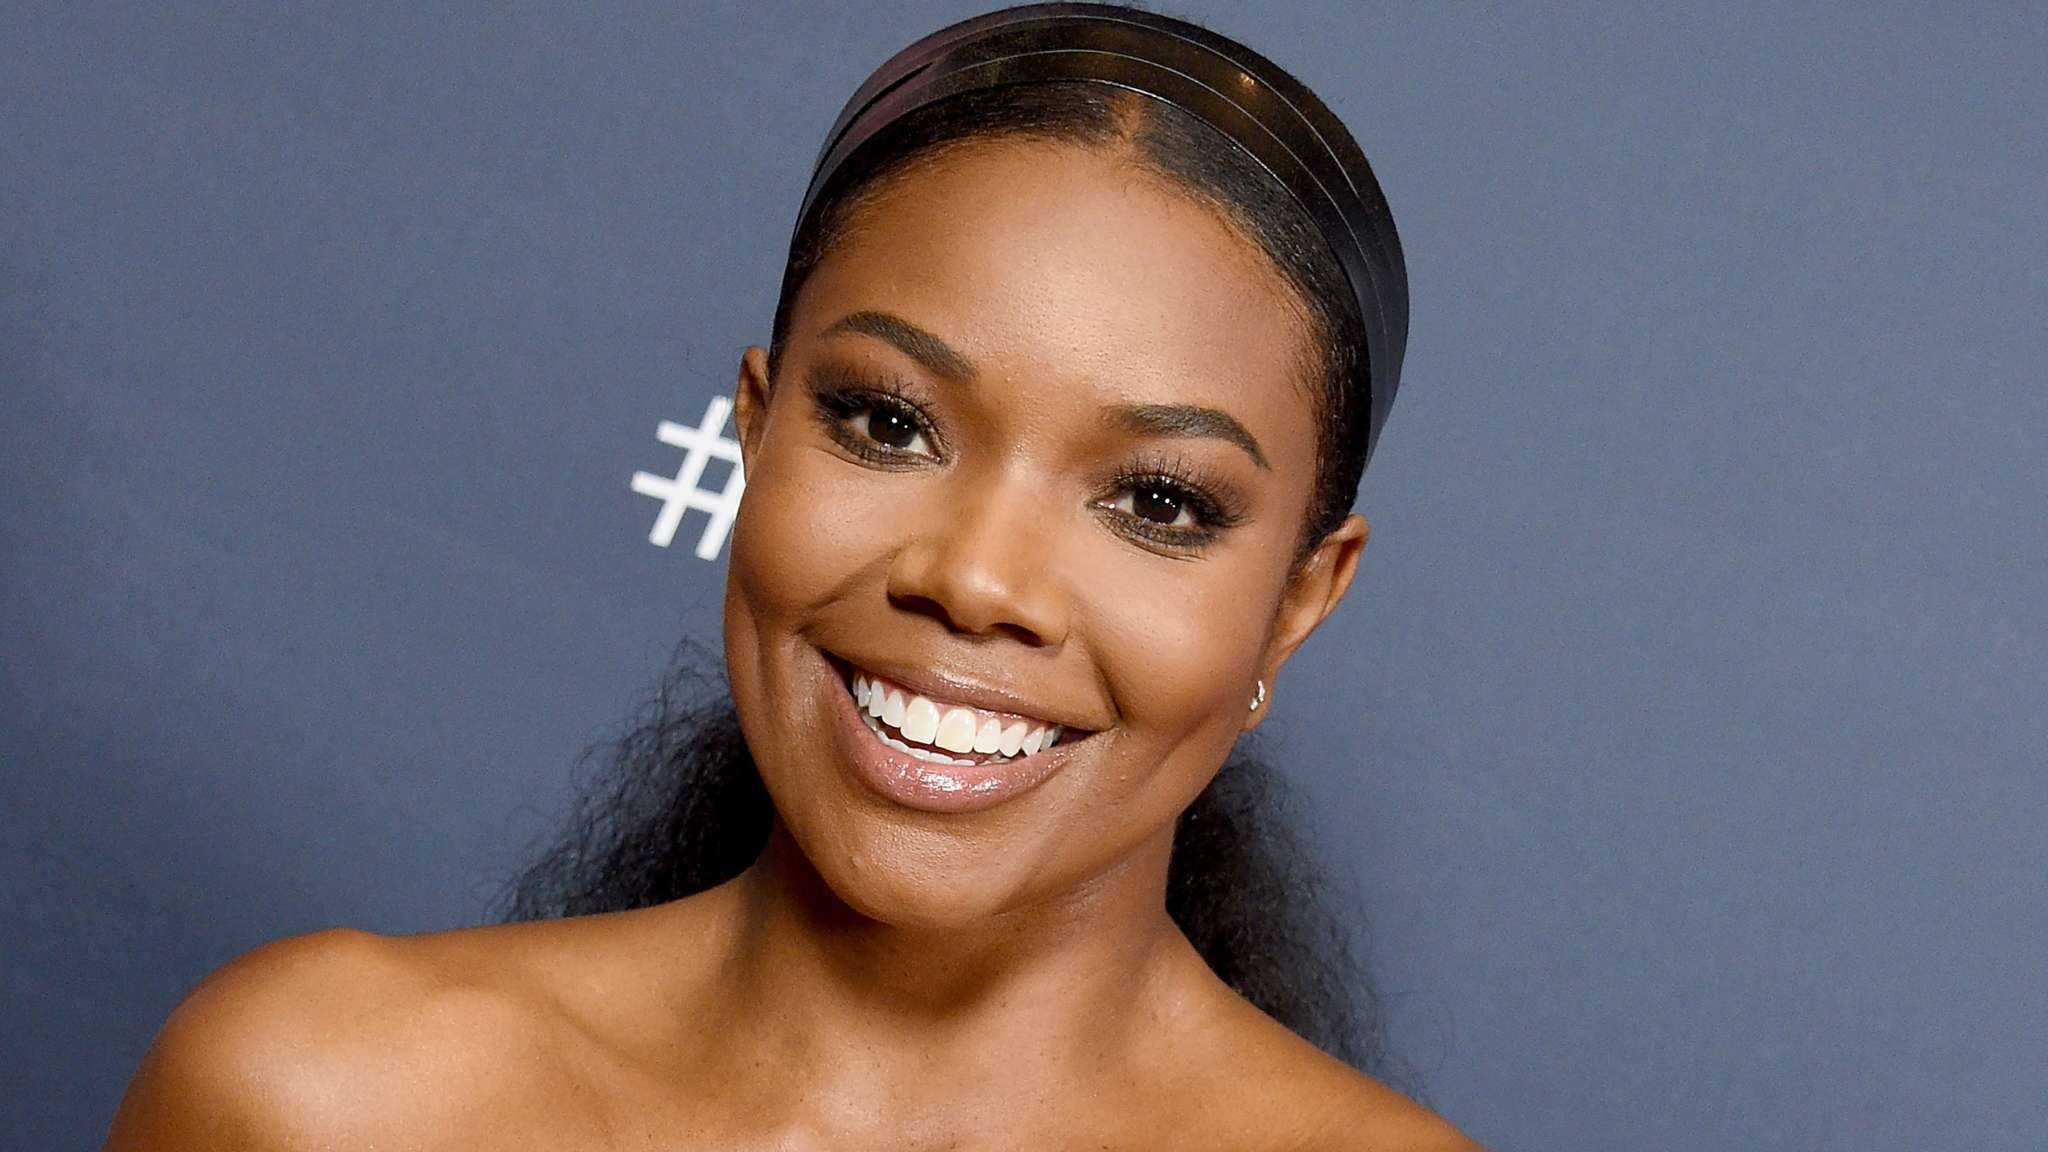 Gabrielle Union's Recent Photo Session Makes Fans Smile – Check It Out Below